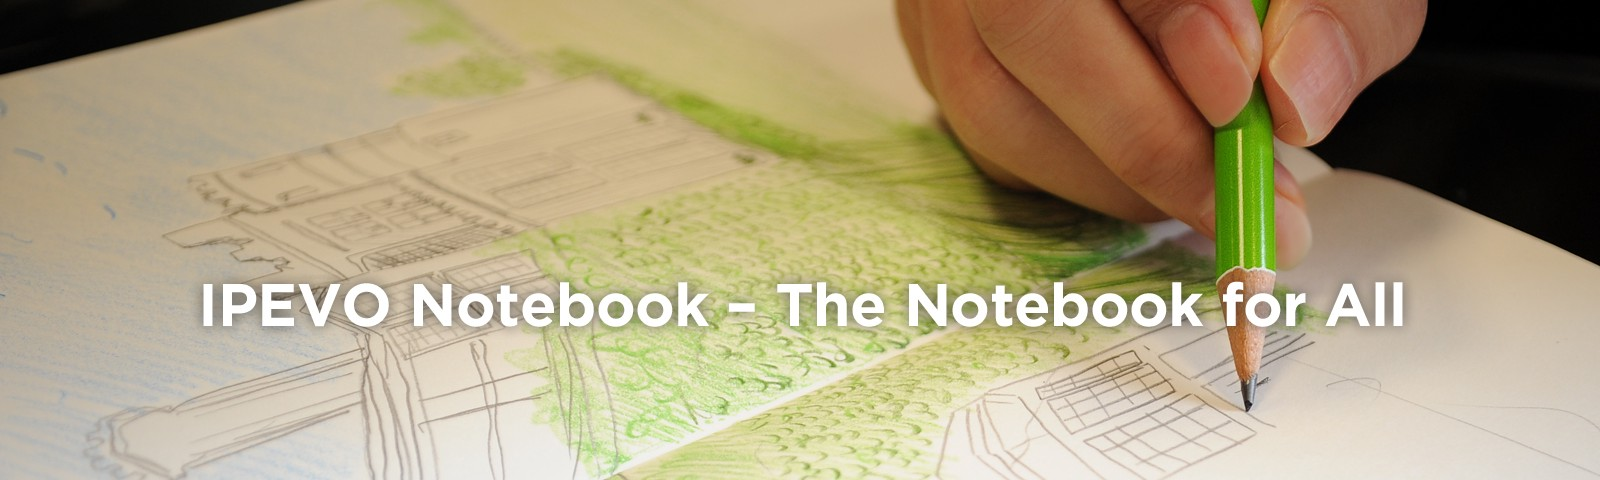 IPEVO Notebook — The Notebook for All